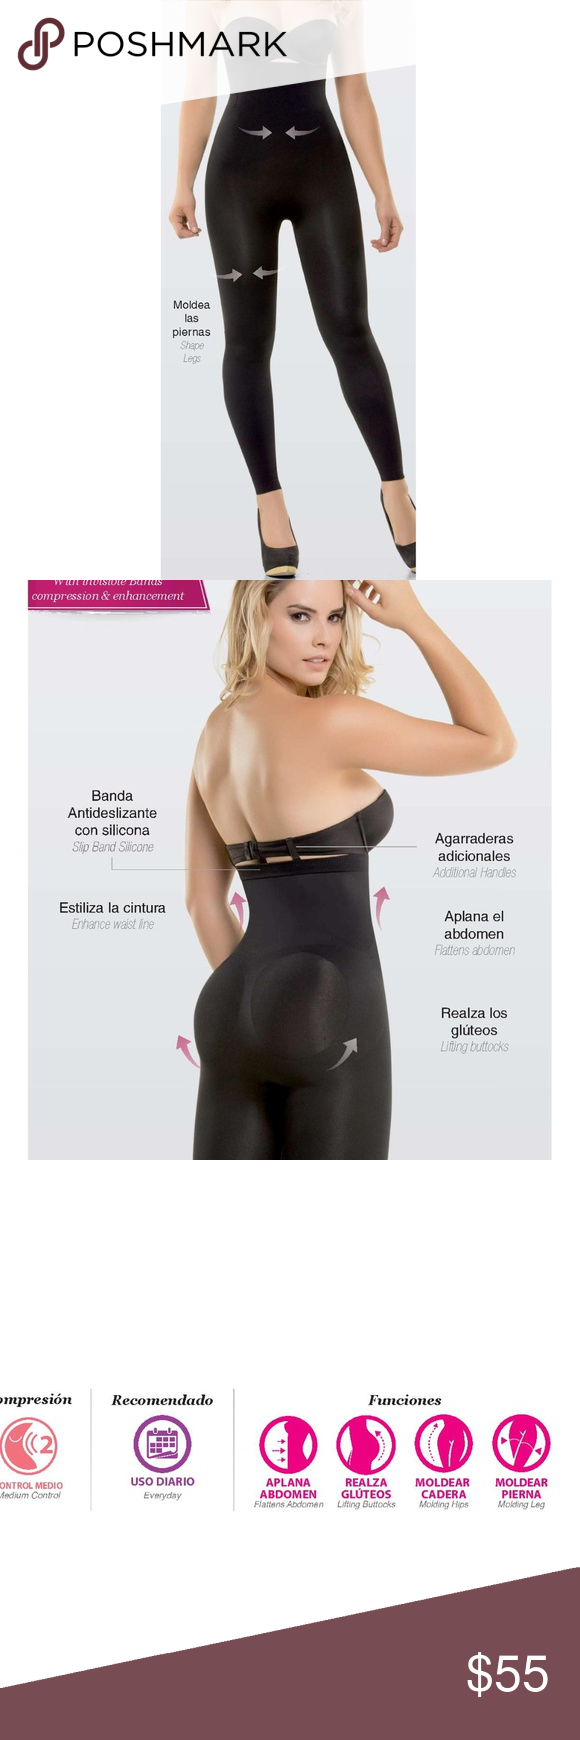 608b13b1c Strapless Underbust Ultra Slimming Leggings L XL Brand New 100% Colombian  Firm Price Size L XL FAST SHIPPER 3-5 DAY DELIVERY! ○ The all-over coverage  of ...